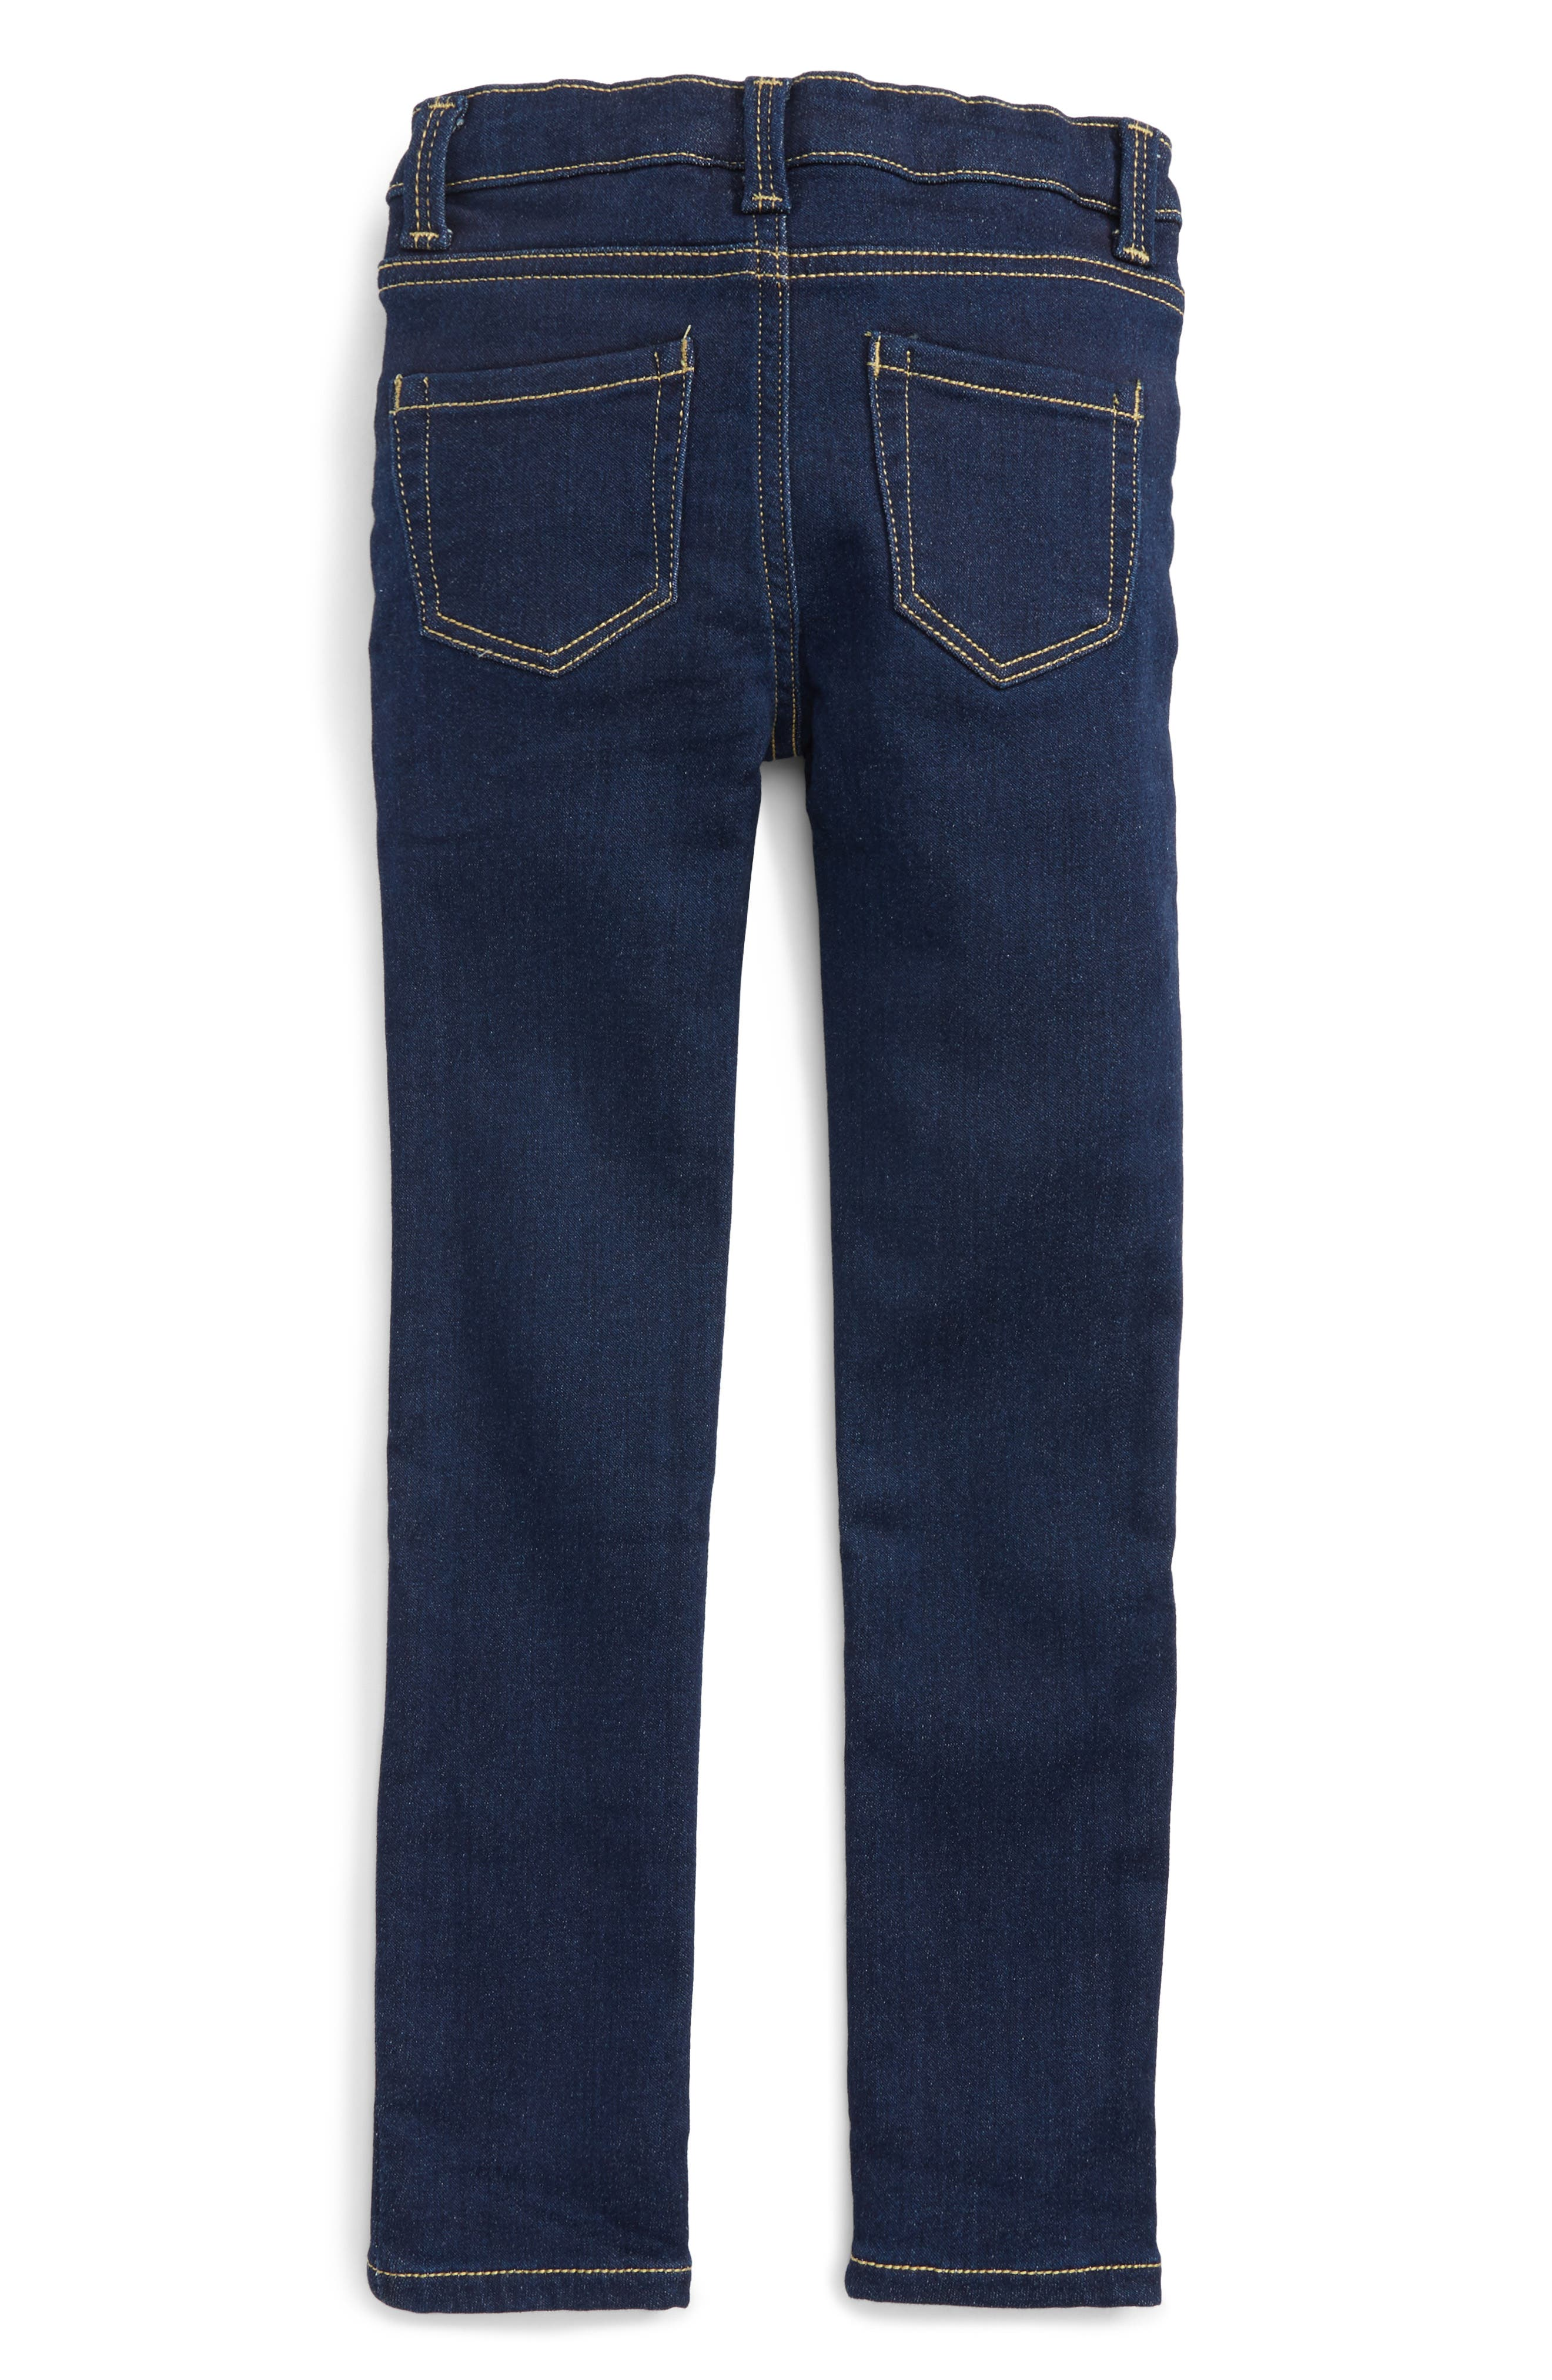 Taylor Skinny Jeans,                             Alternate thumbnail 4, color,